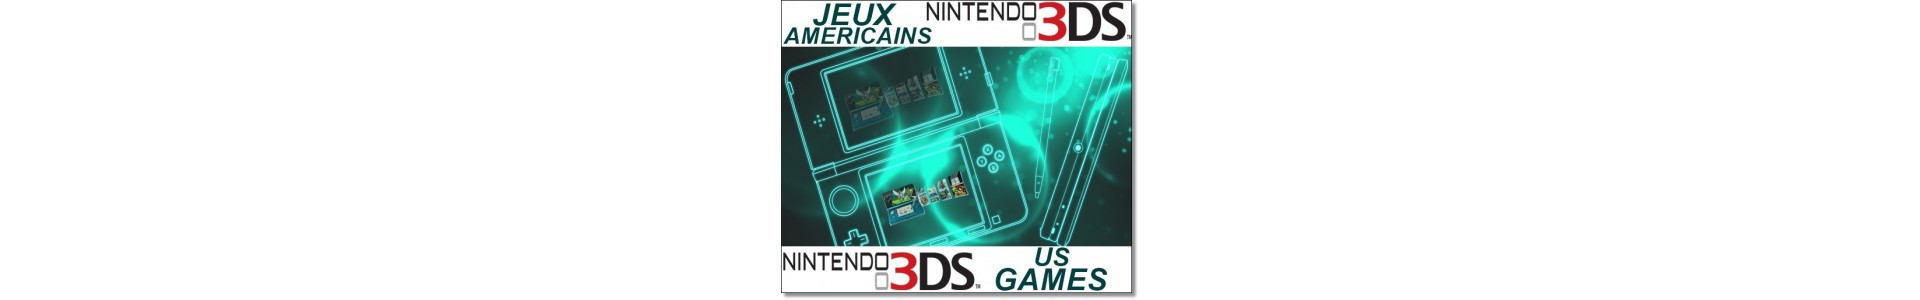 3ds games (us)